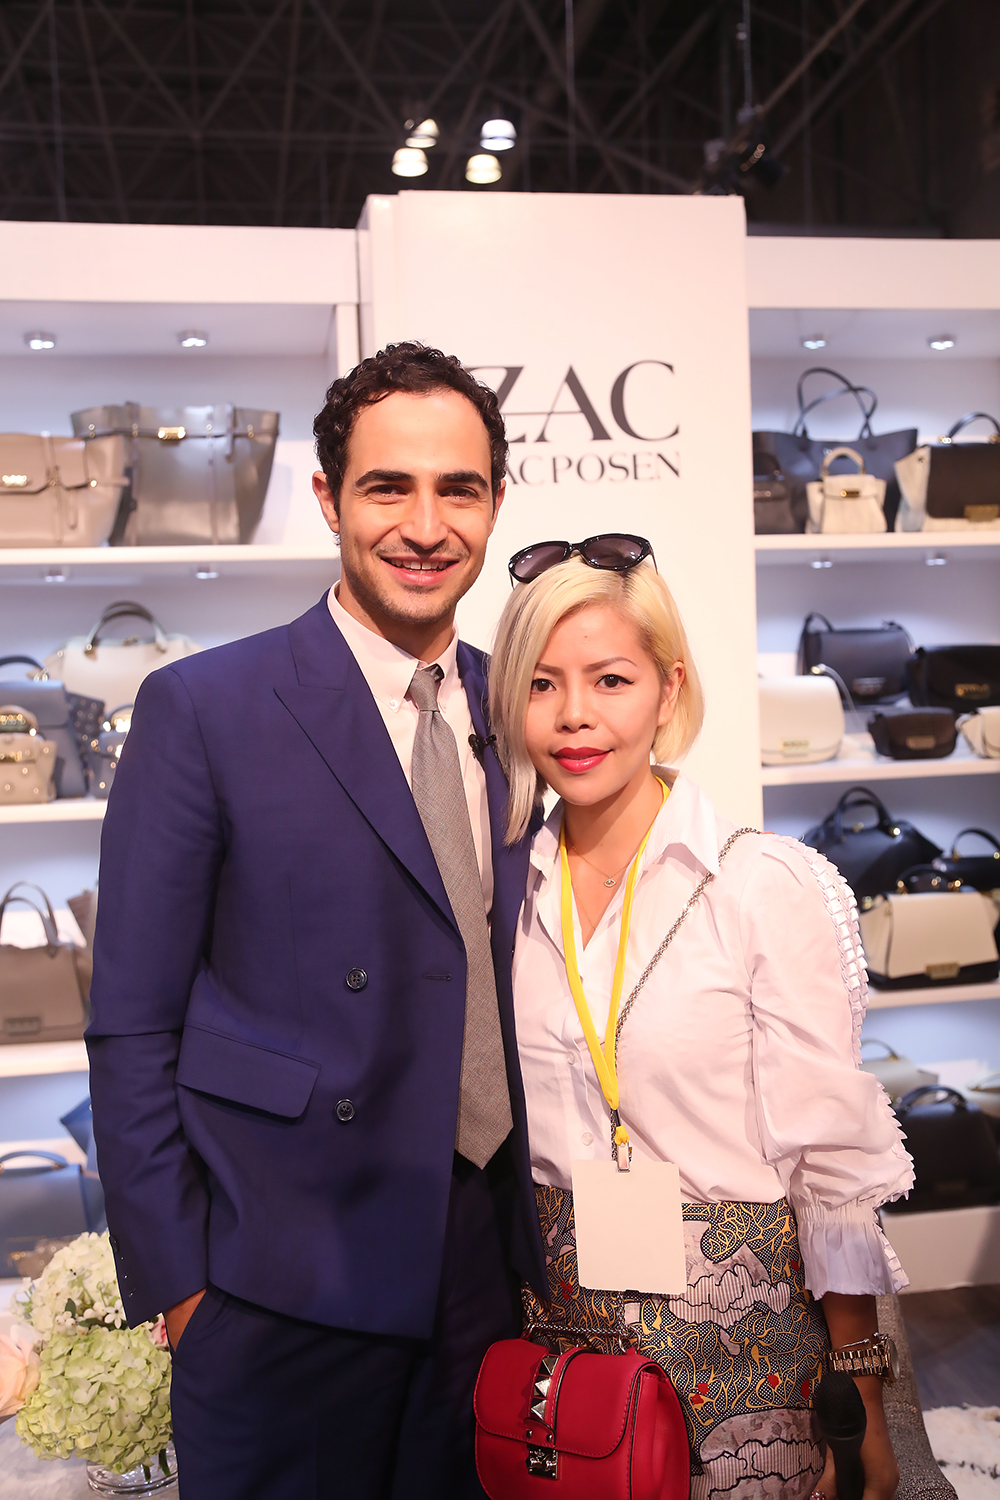 Crystal Phuong and fashion designer, Zac Posen- New York Fashion Week 2015